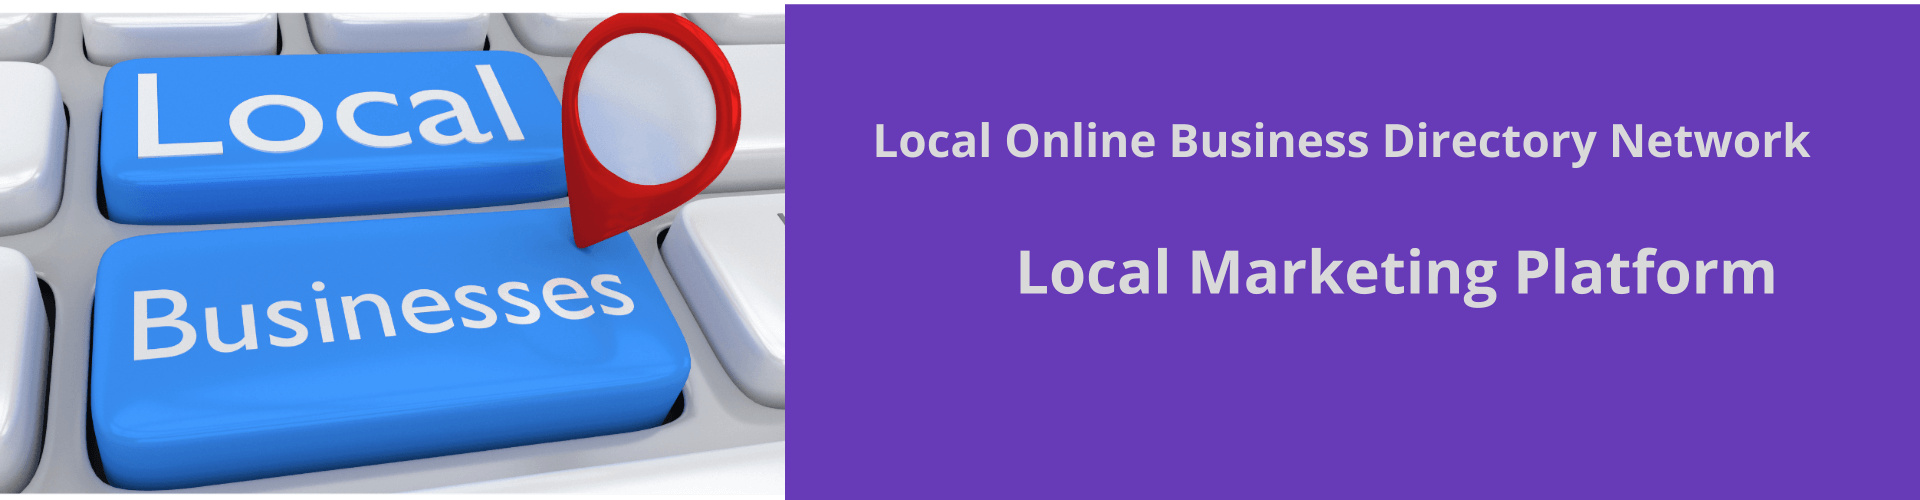 - Custom dimensions 1920x500 px - Local Online Business Directory Network – Local Marketing Platform